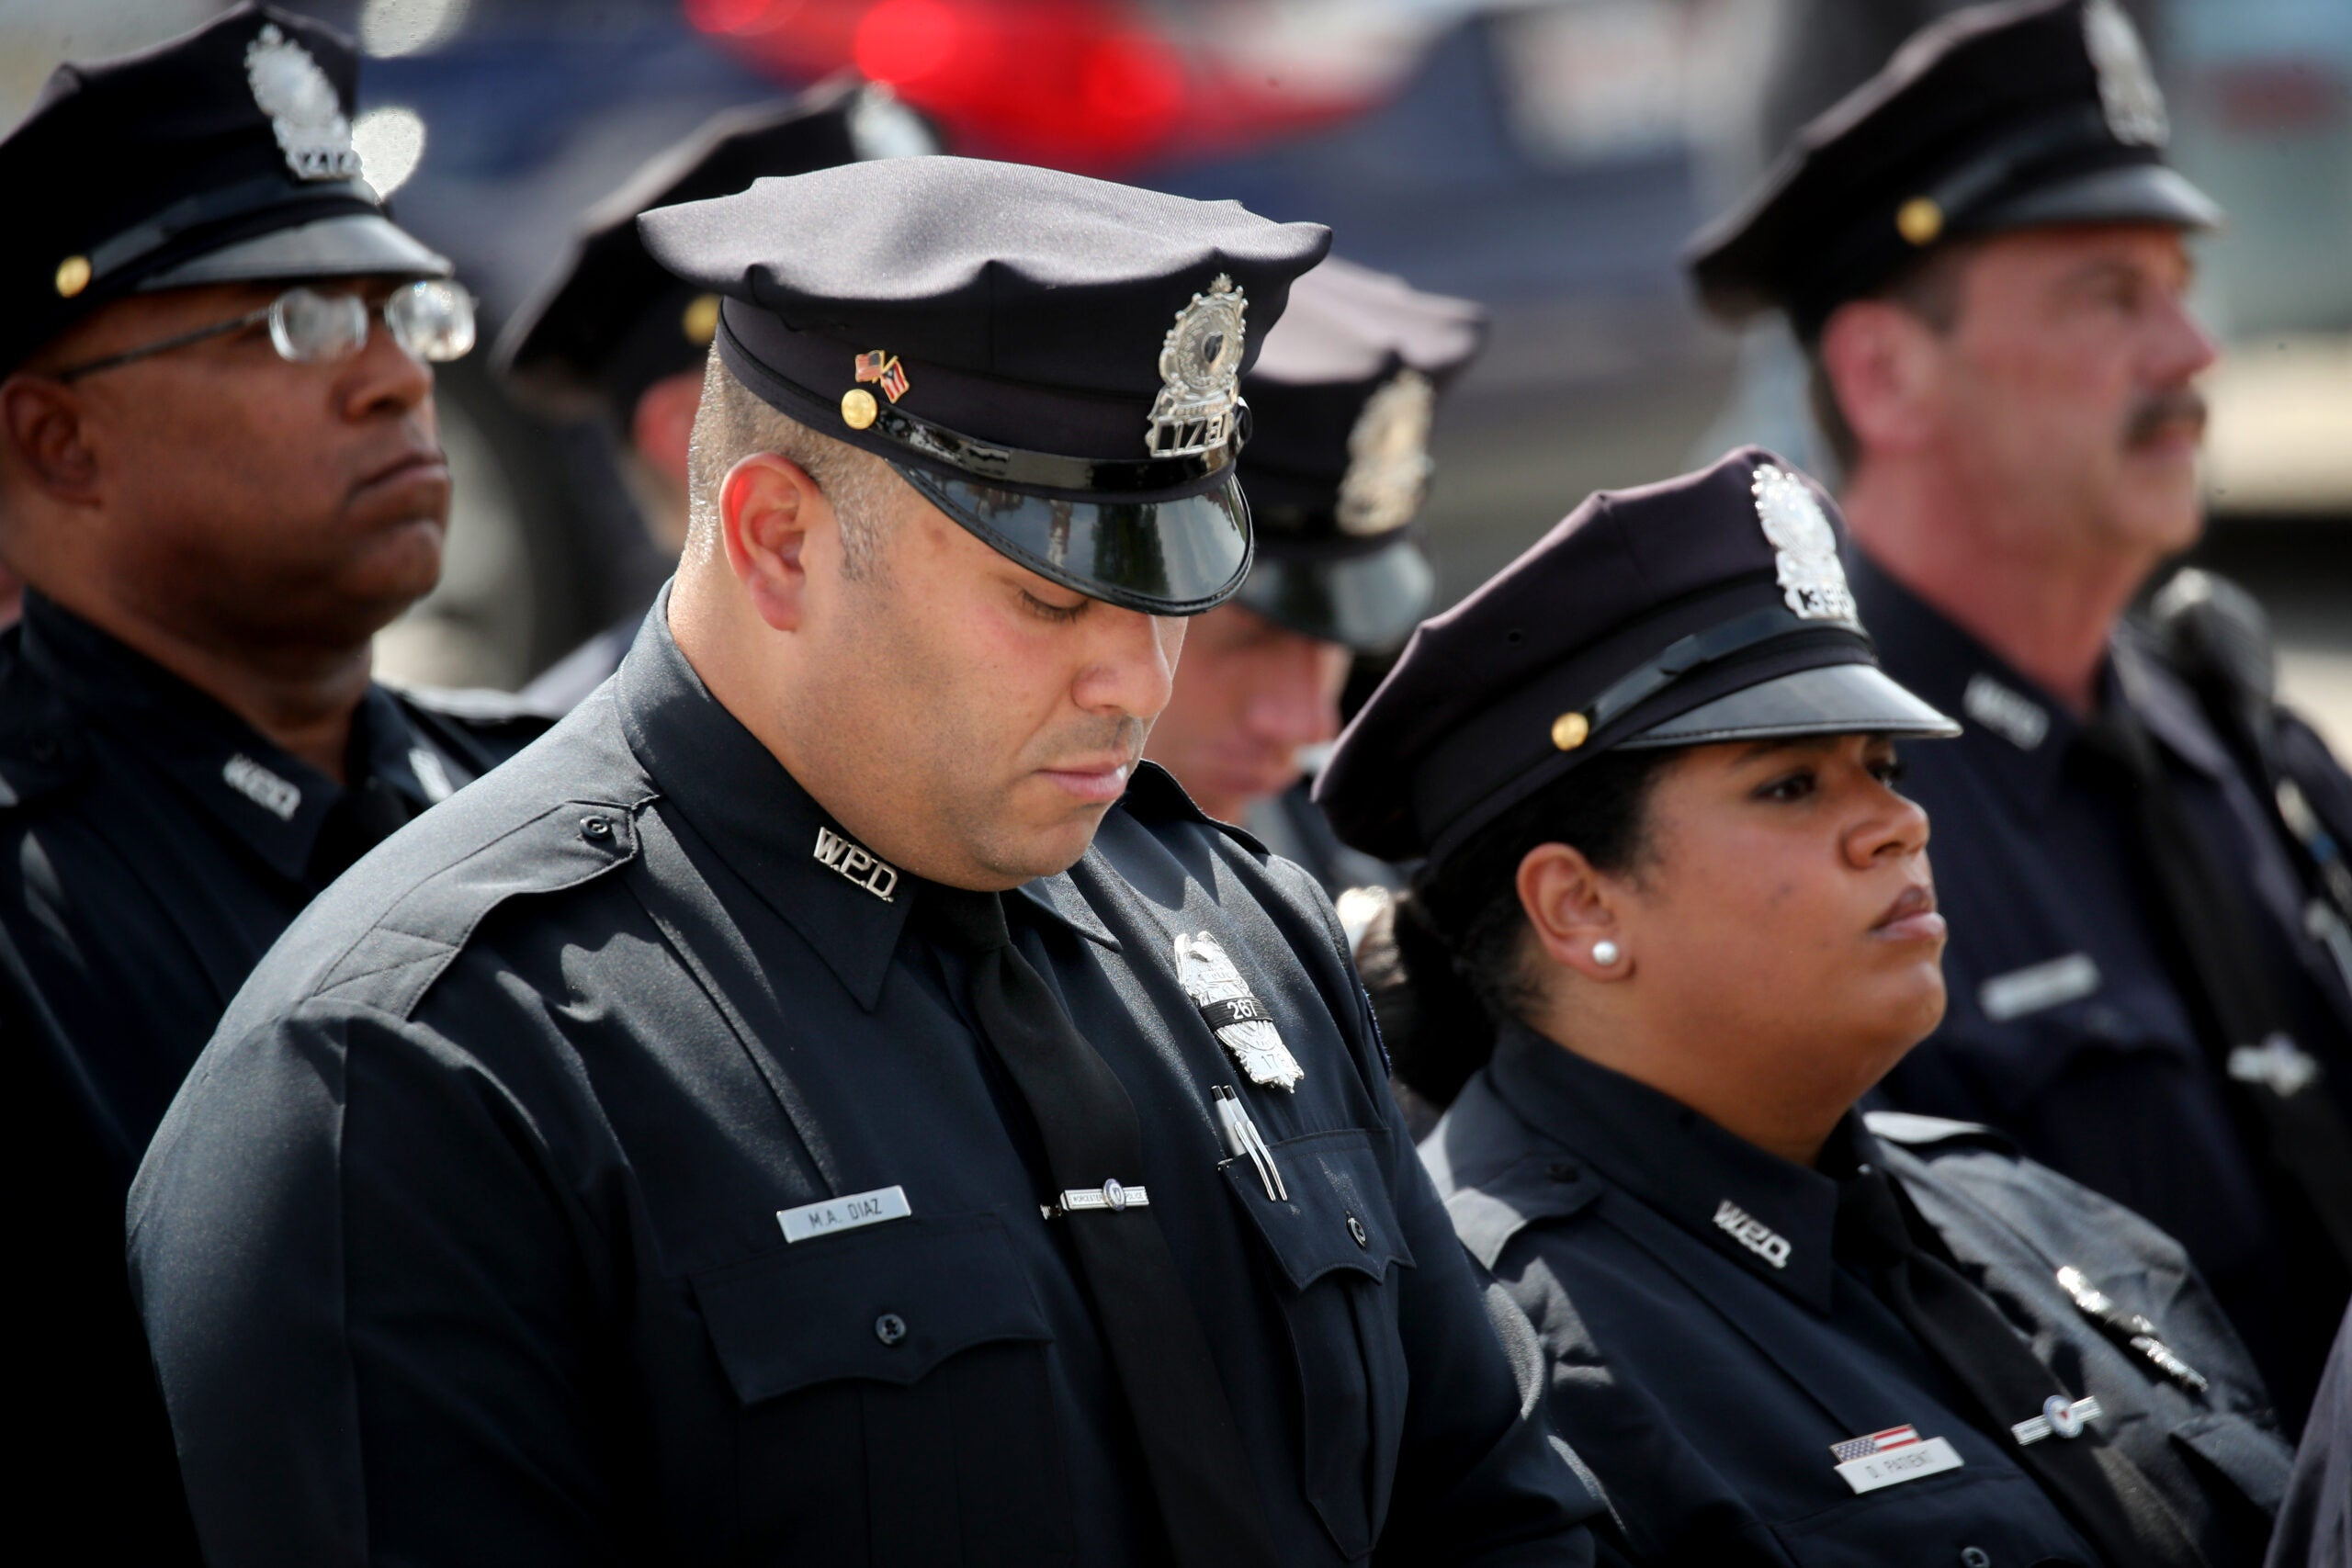 City honors officer who died trying to save drowning boy 10